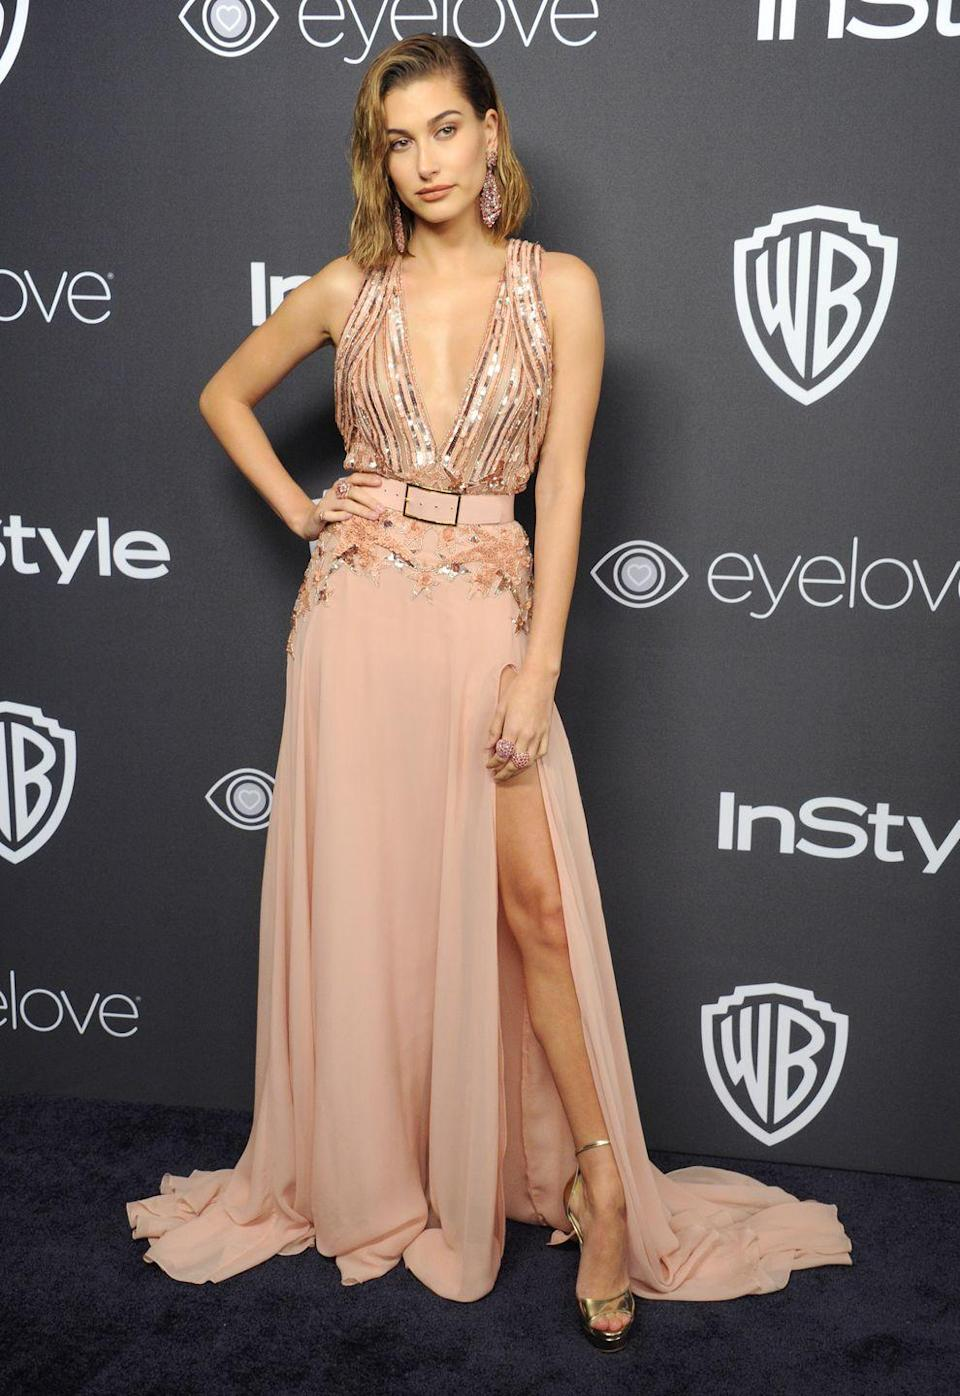 <p>Hailey wore this pink Elie Saab dress to the Warner Bros & InStyle afterparty in January.</p>